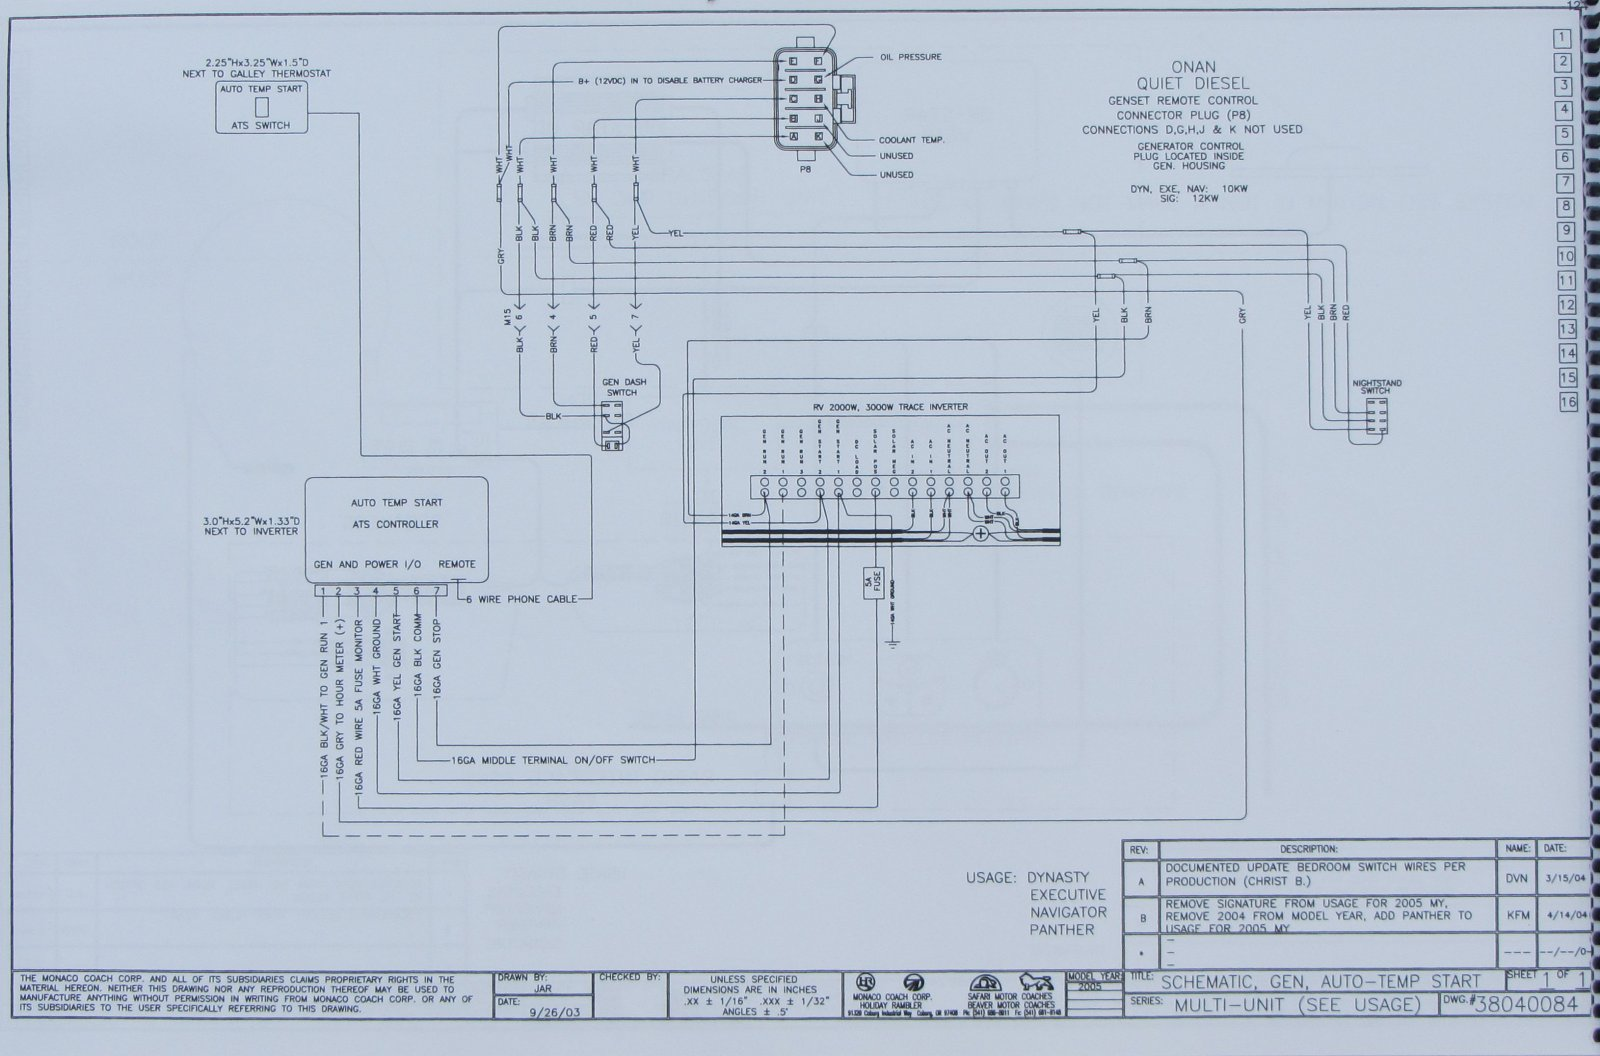 1996 Holiday Rambler Wiring Diagram